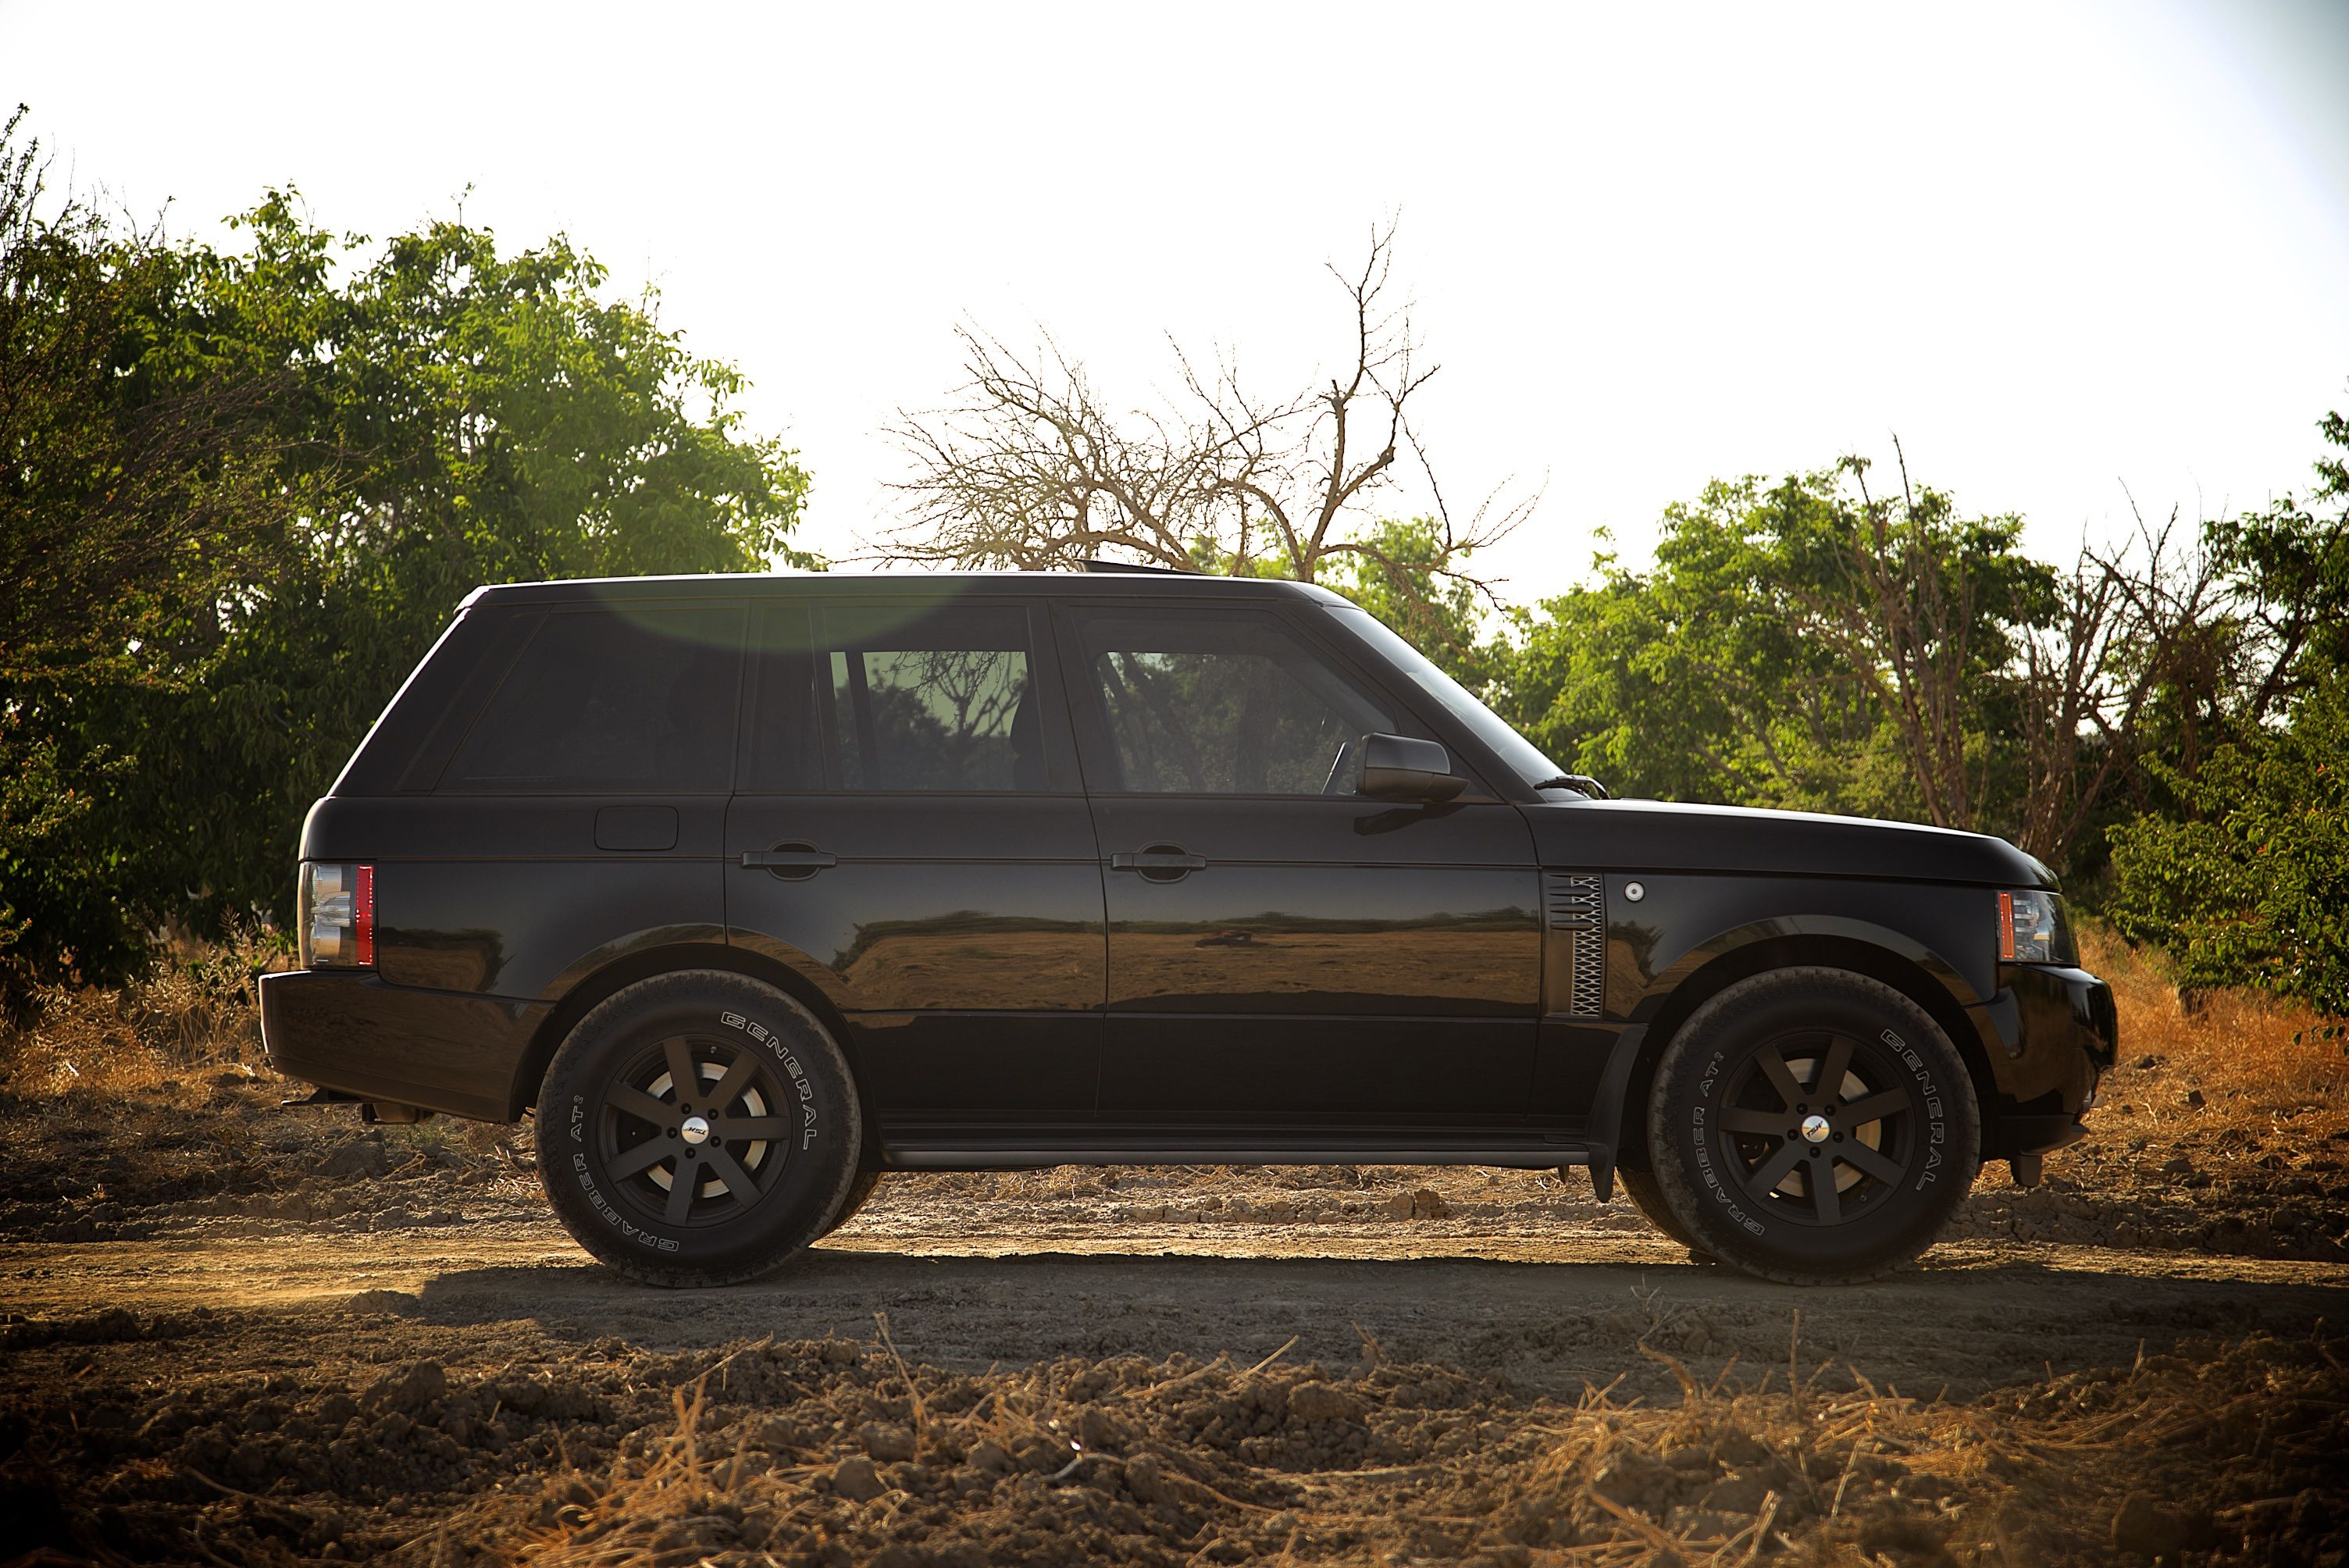 2010 l322 facelift full size range rover hse 2 lift on 33 tires 4x4 pinterest range. Black Bedroom Furniture Sets. Home Design Ideas